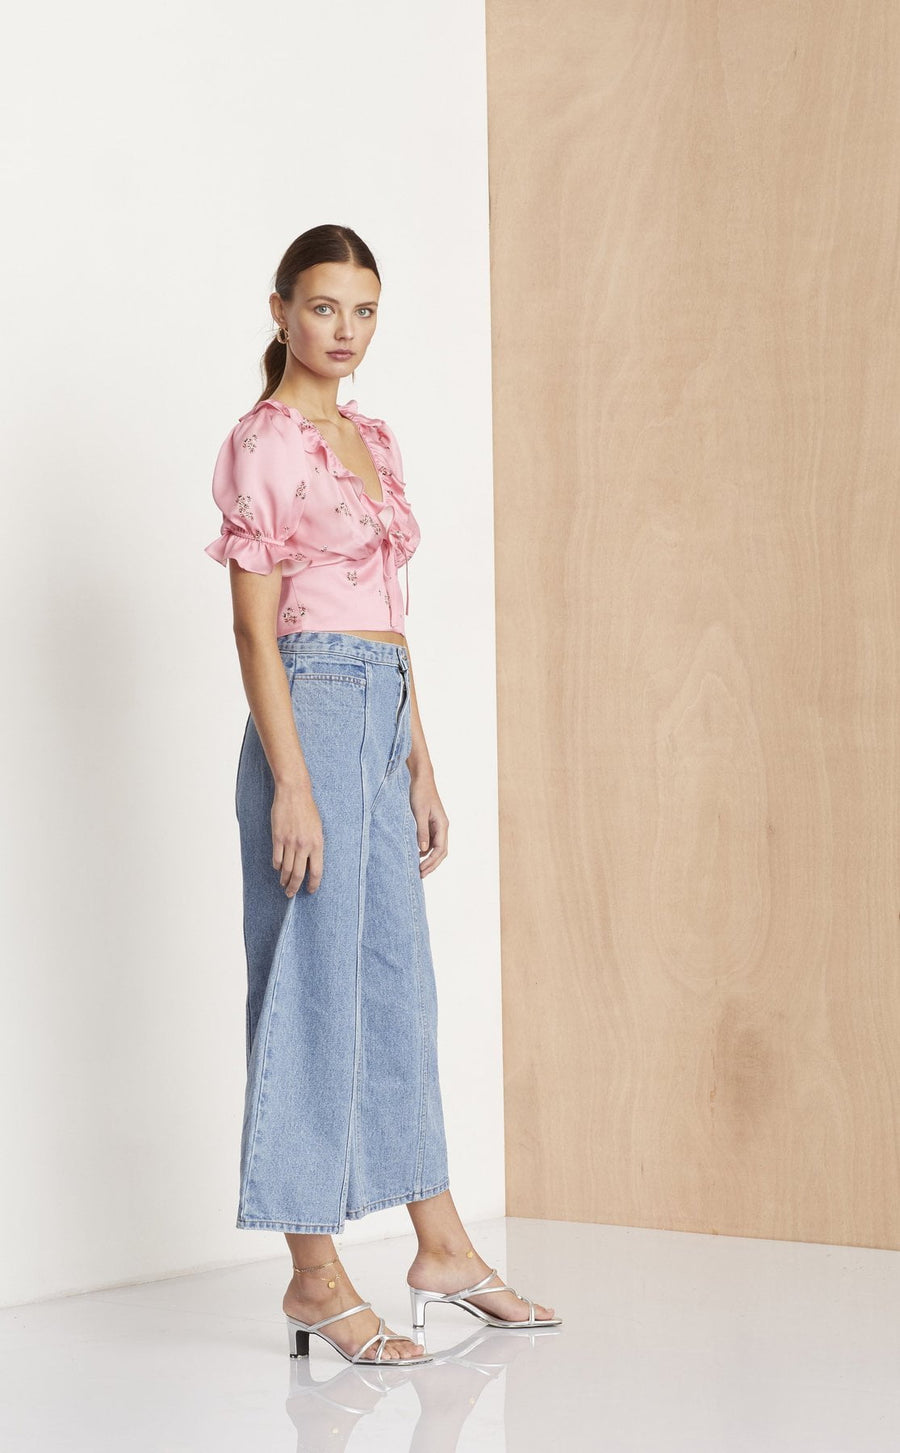 Bec and Bridge Blue Jean Baby Culotte